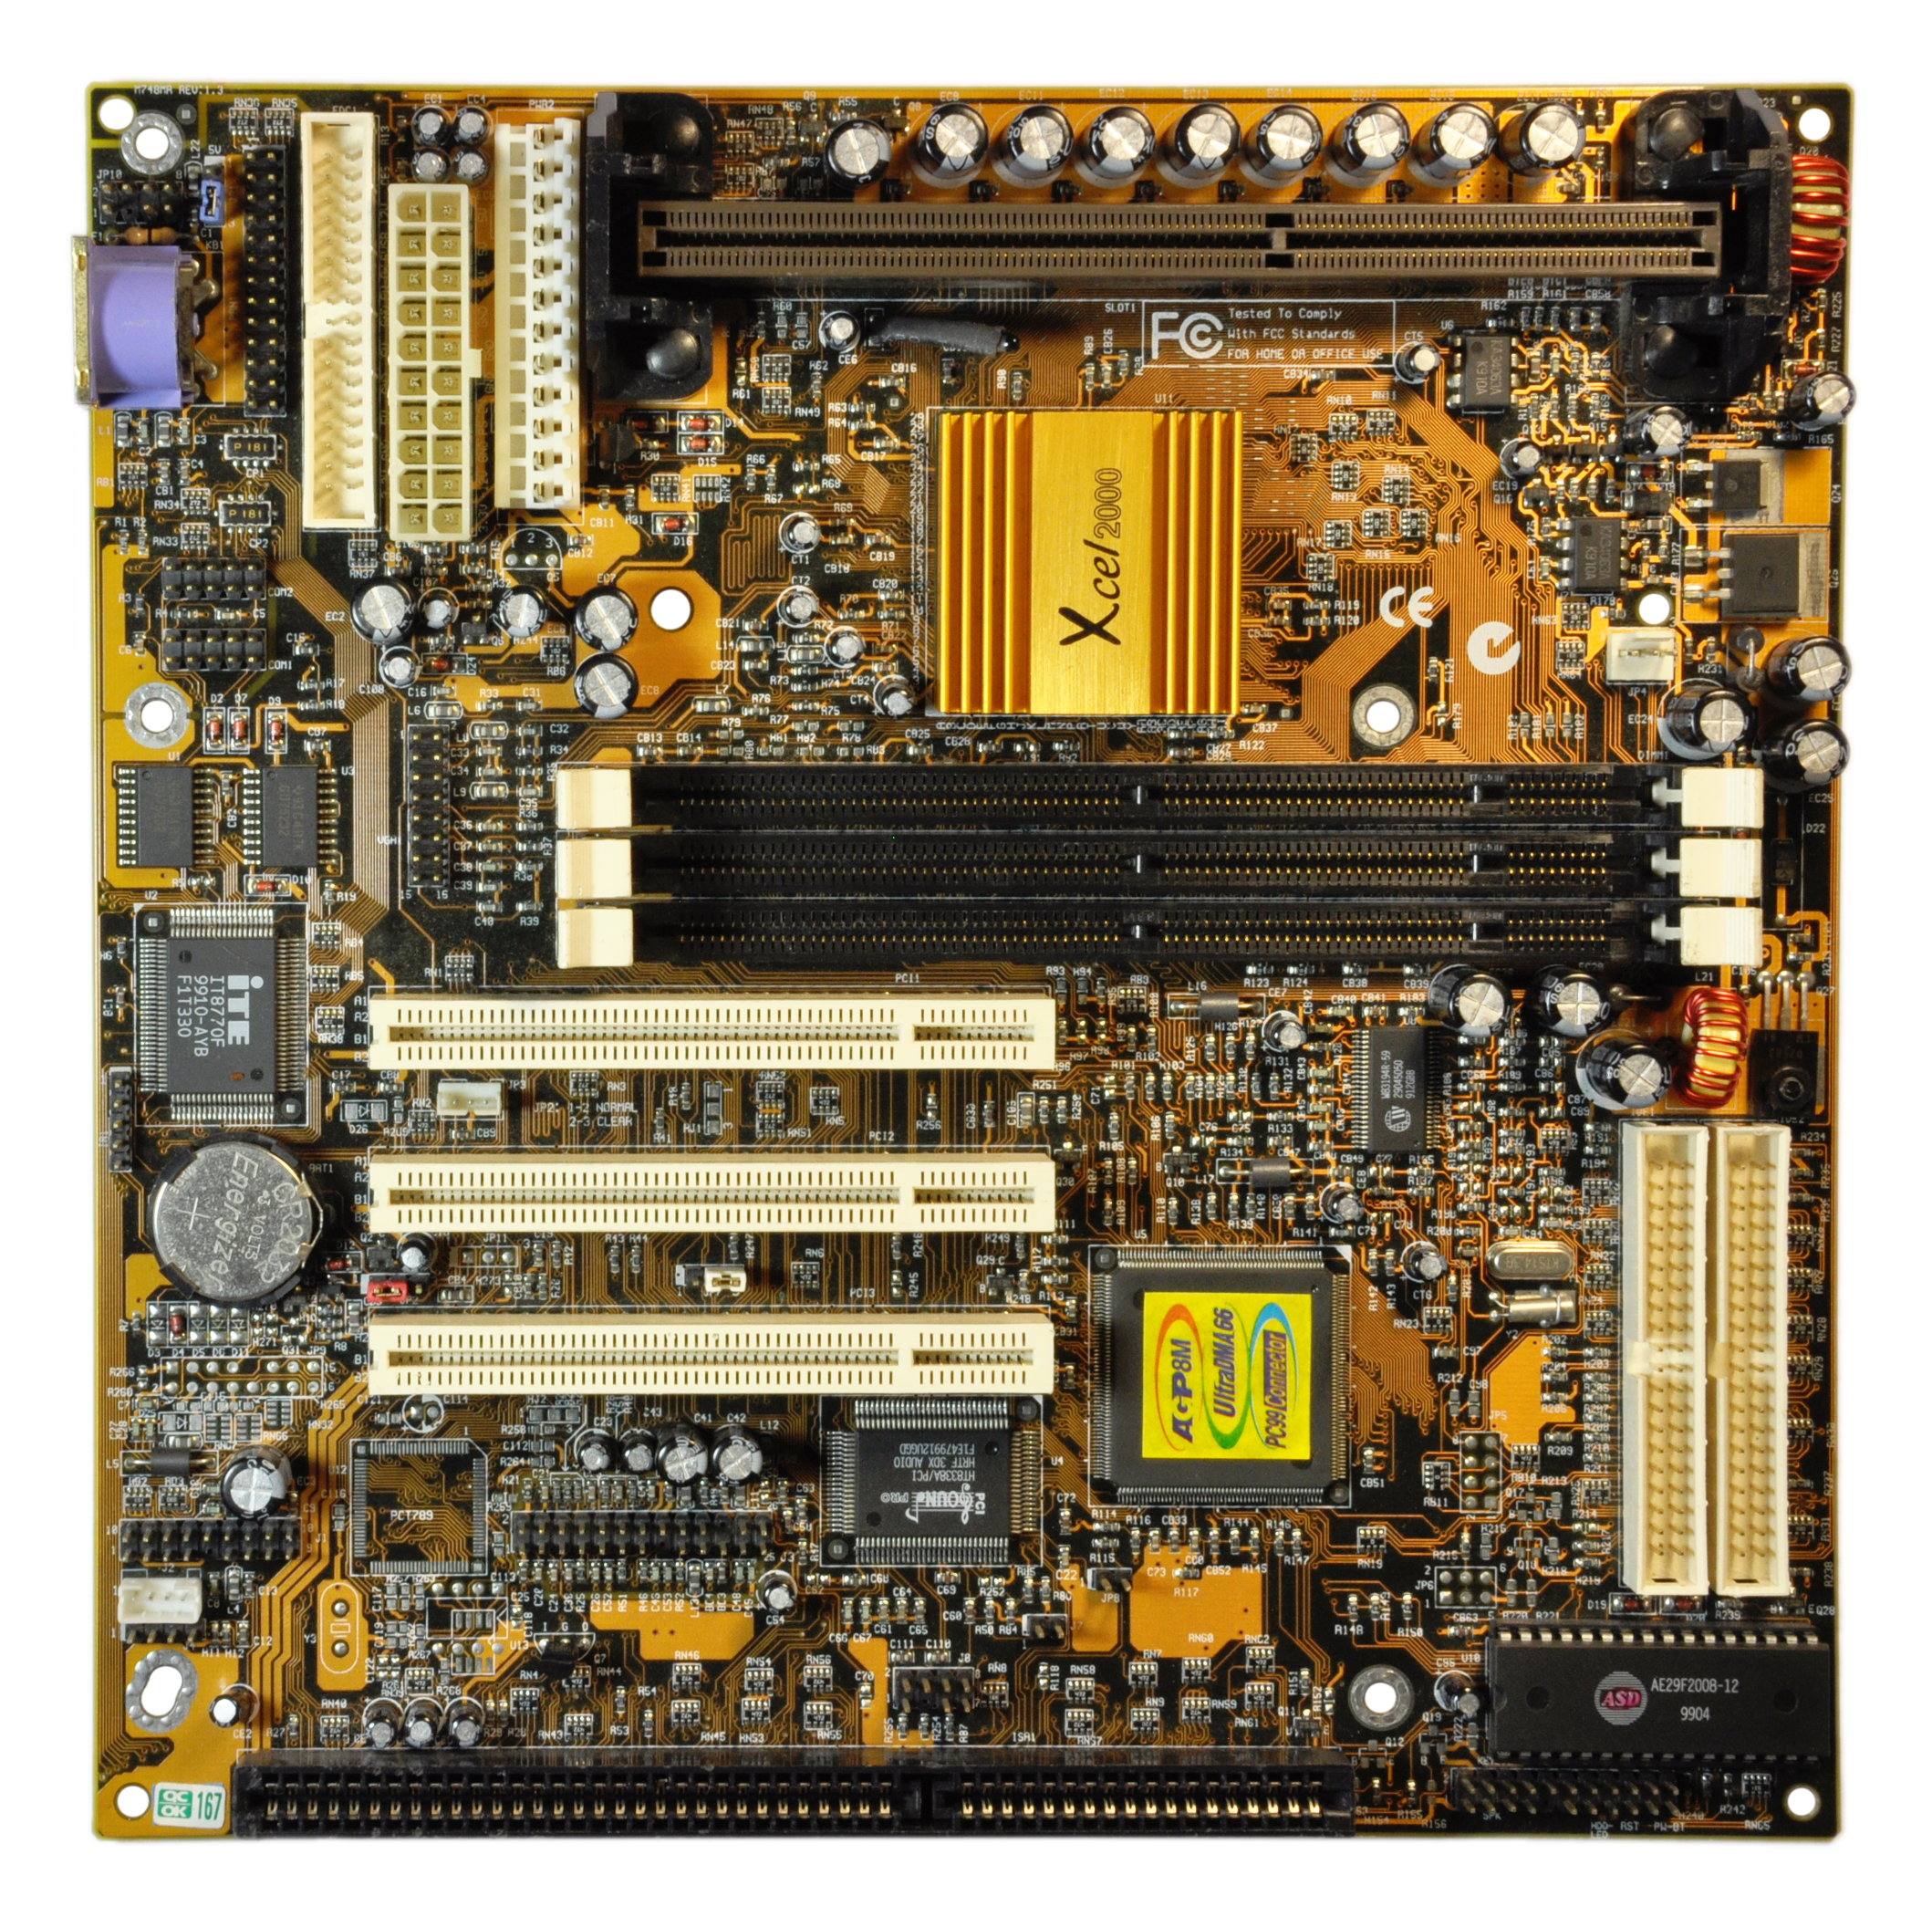 80.011-mobo_m748-front.jpg